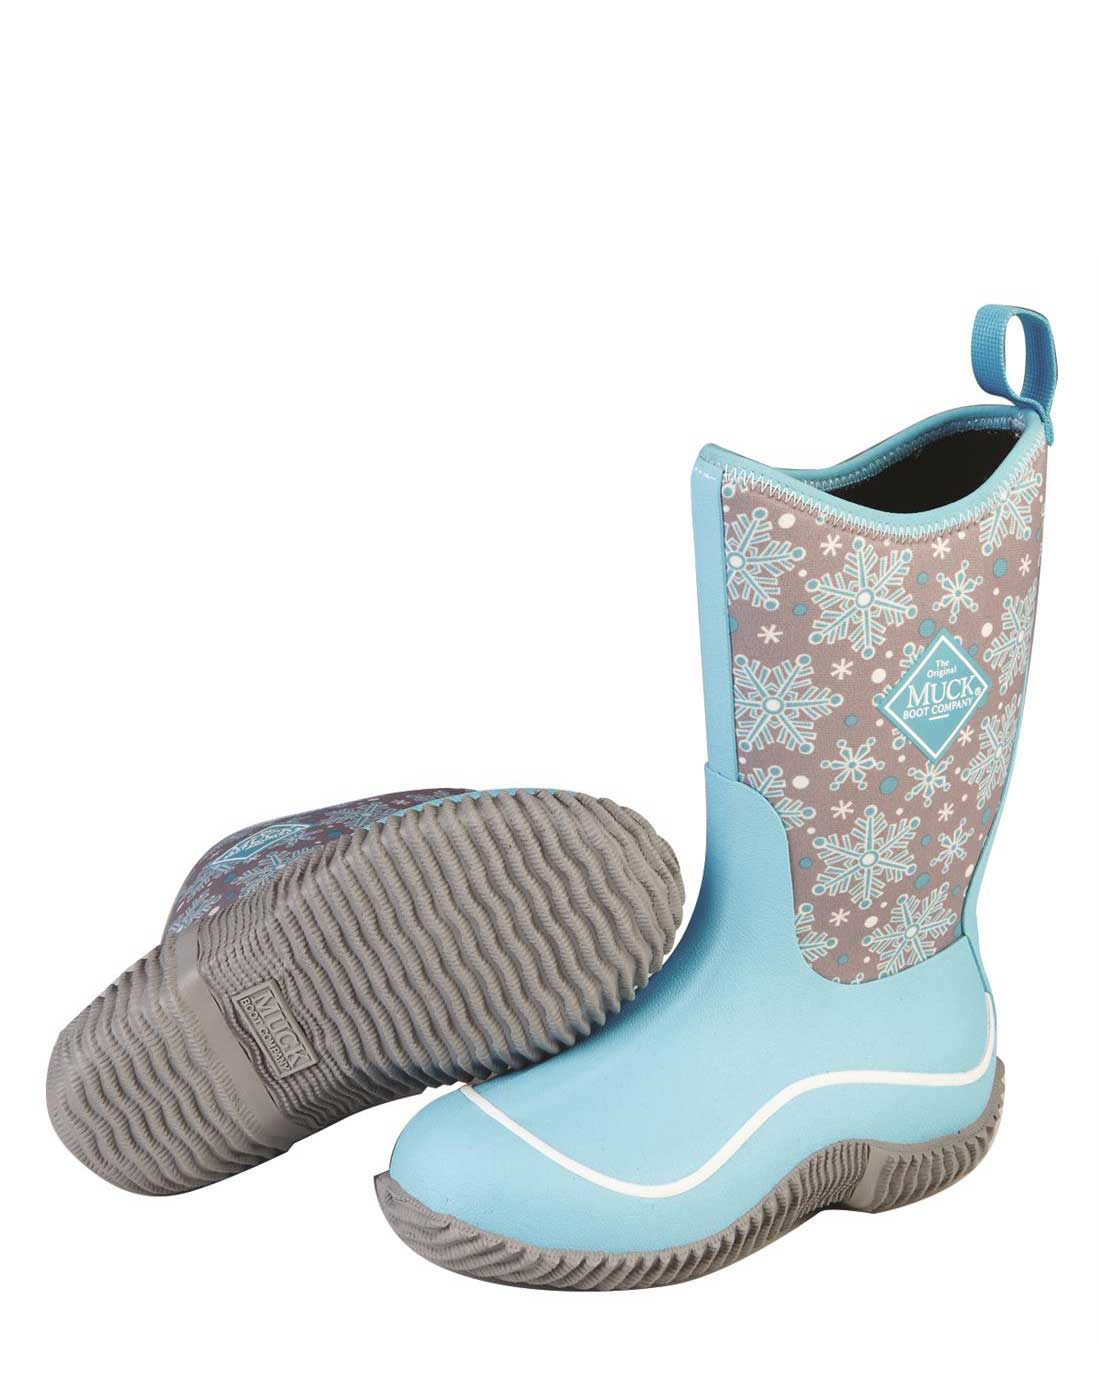 Kids Hale Blue Snow Flake Gumboots